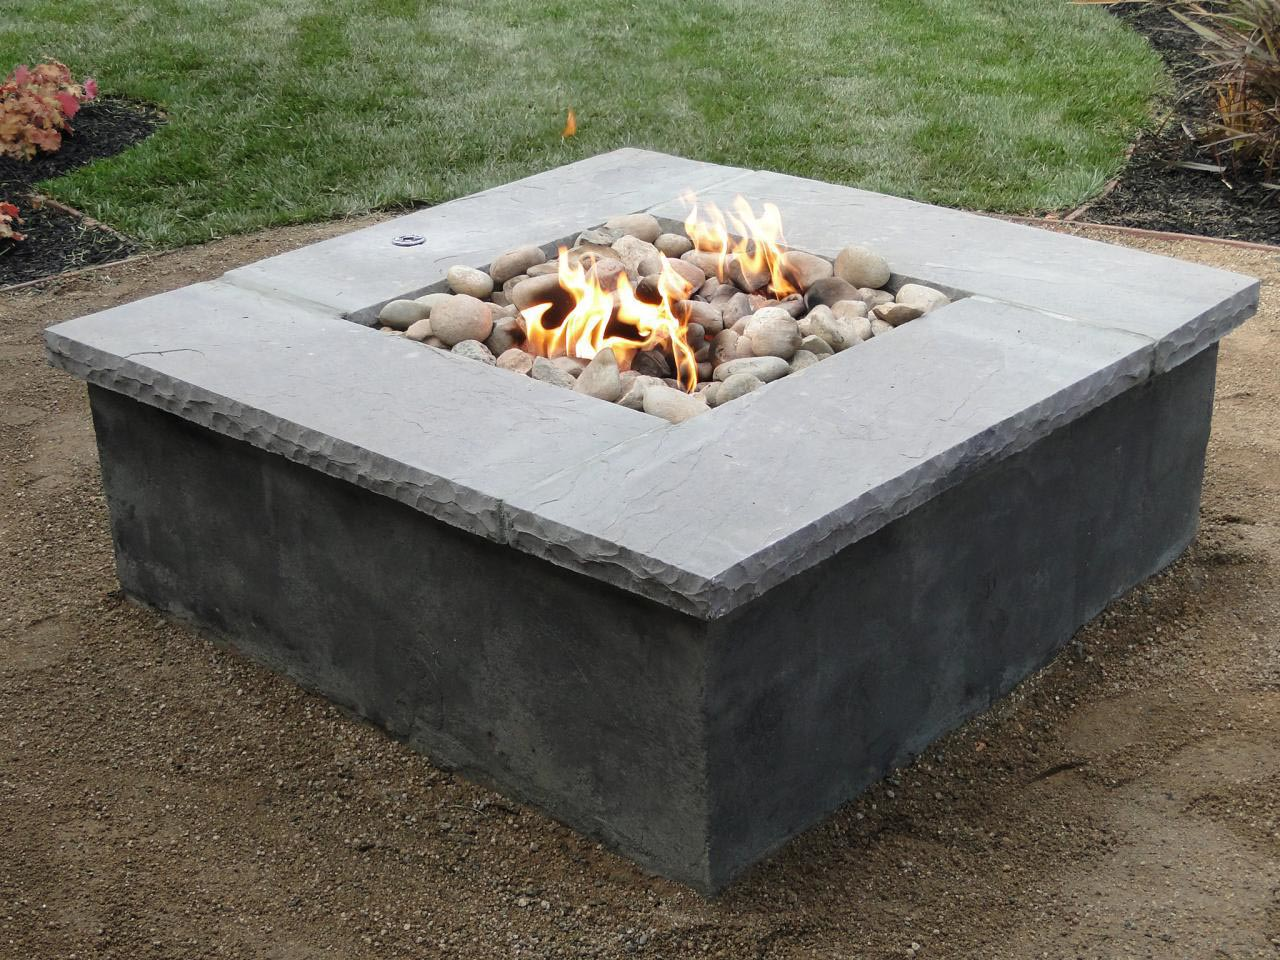 Block Fire Pit Advantages Over a Campfire | Fire Pit ... on Diy Cinder Block Fireplace id=45702